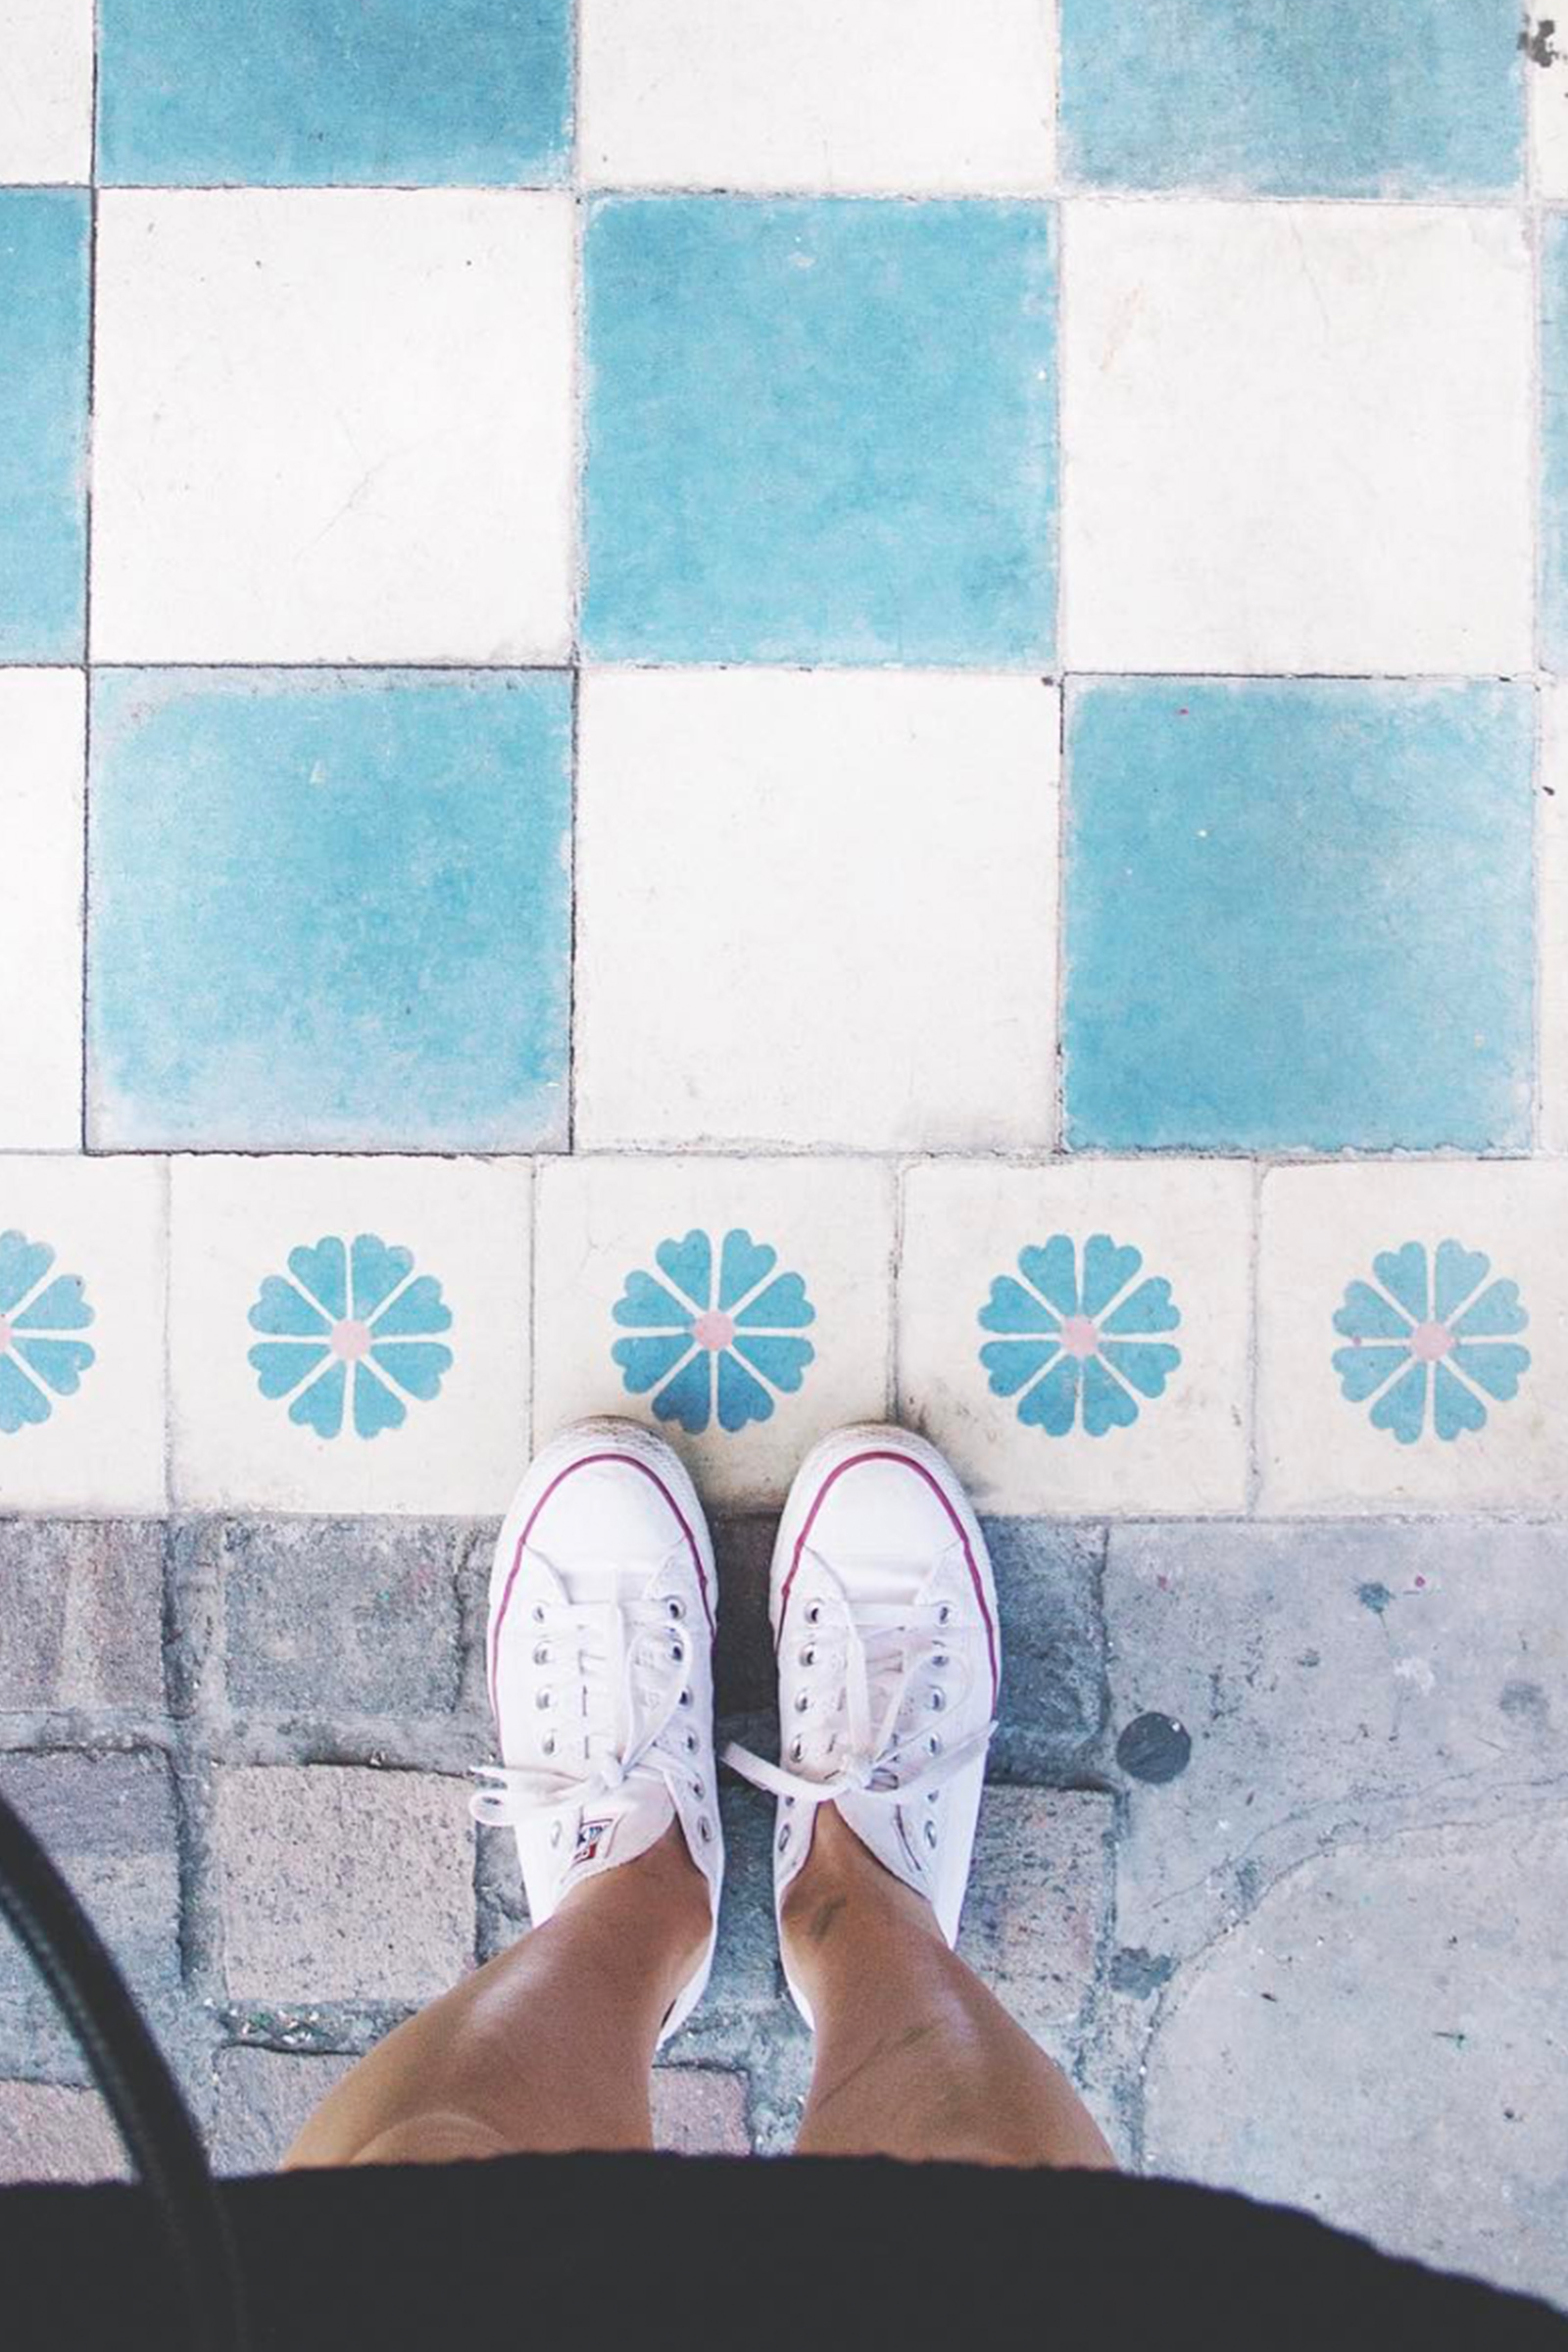 Cute Checkered Floor / Light Blue / Instagram Ideas / Home Decor / Kelly Fiance Creative